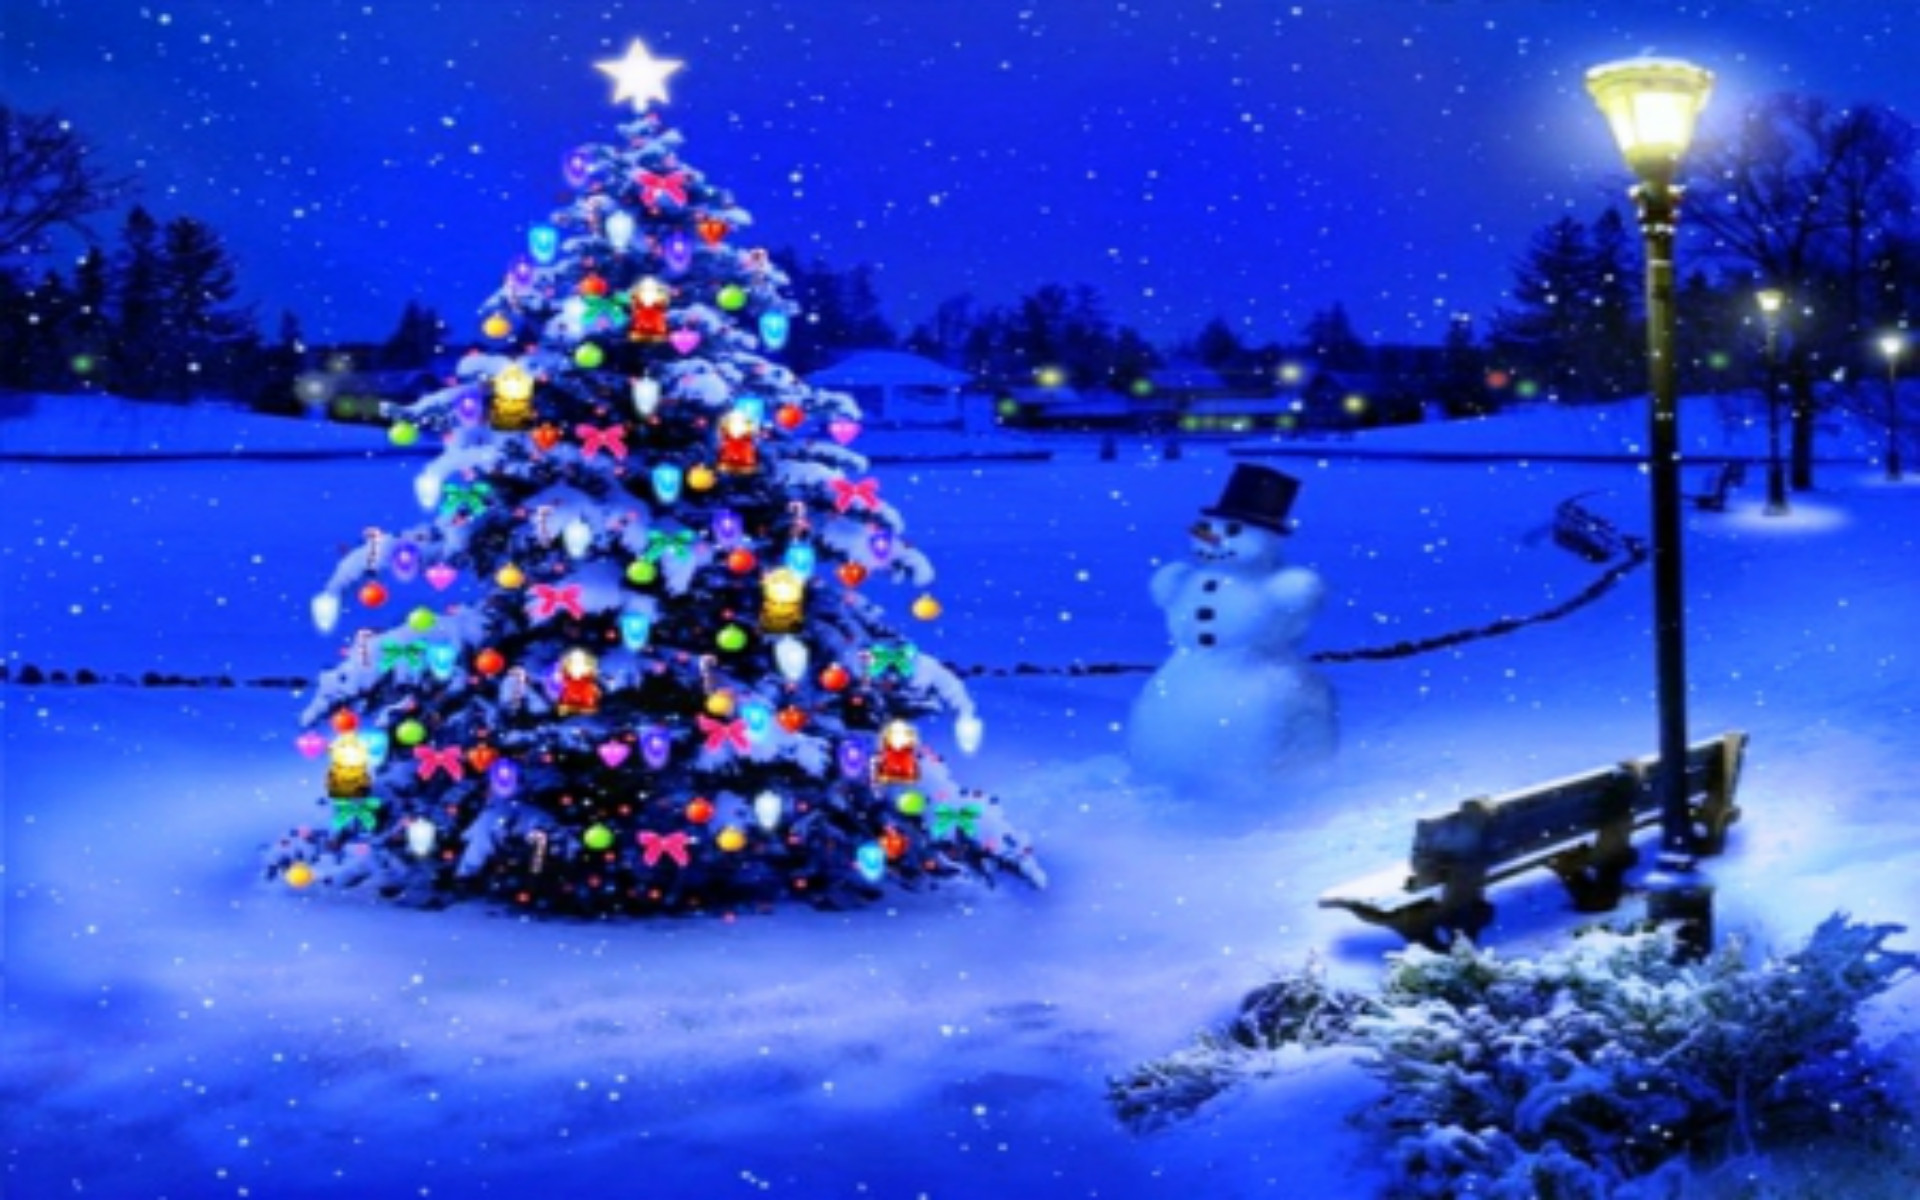 Christmas tree wallpapers hd 71 images - Free christmas images for desktop wallpaper ...